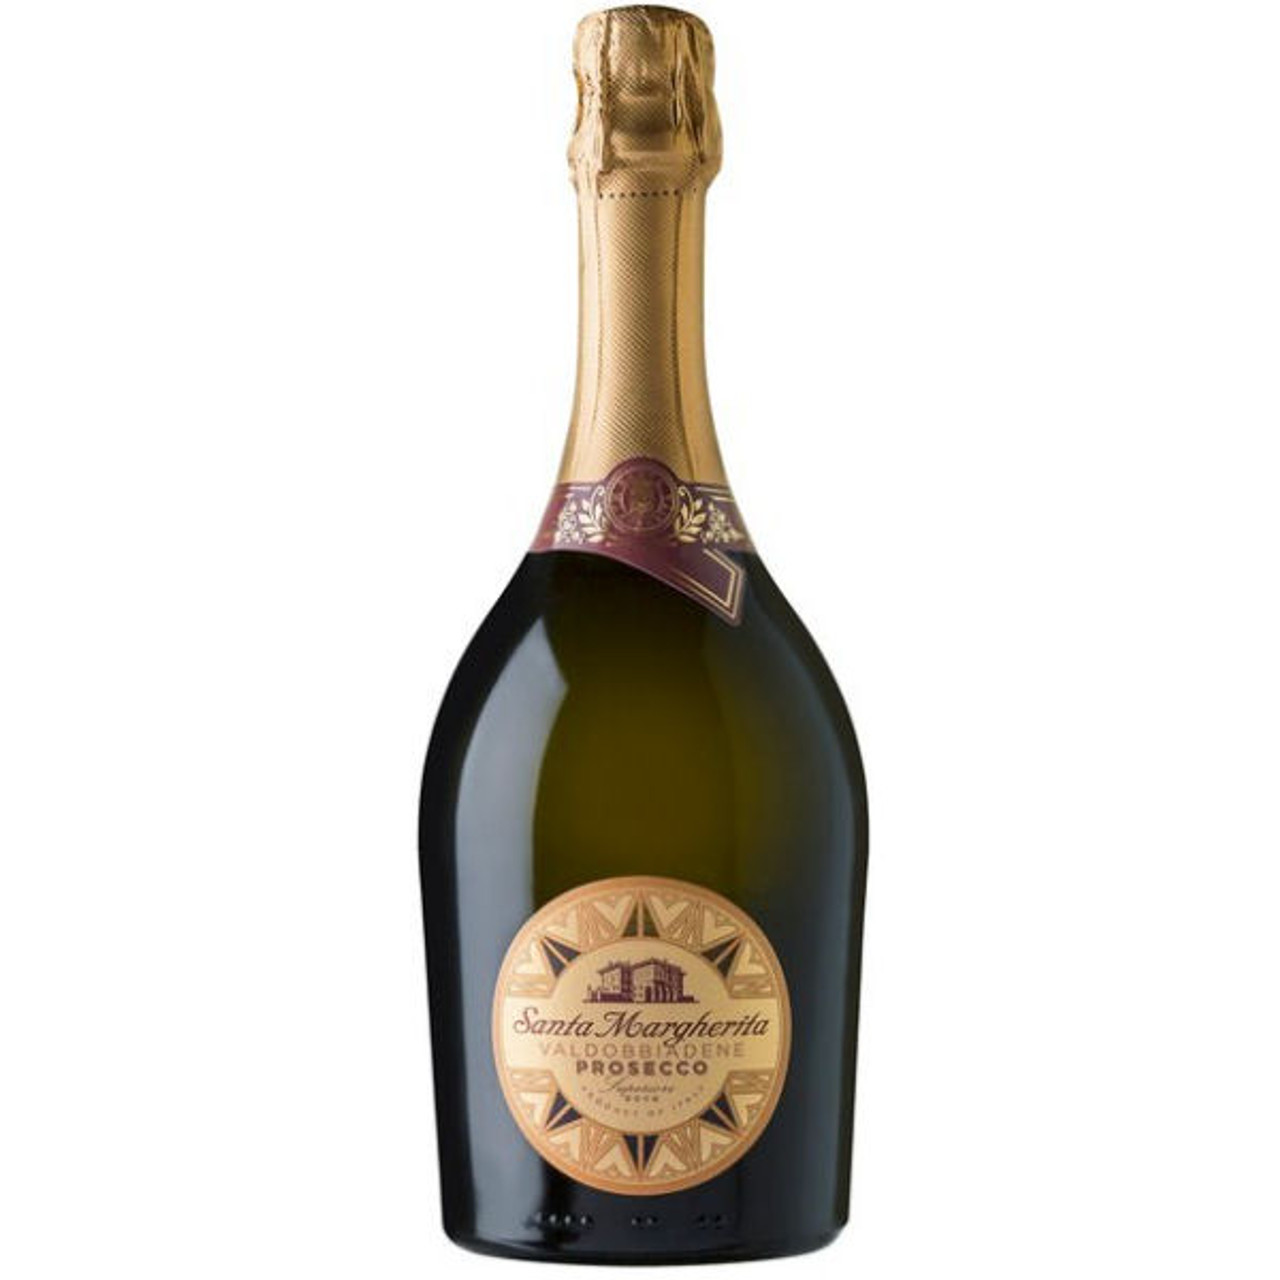 12 Bottle Case Santa Margherita Prosecco di Valdobbiadene Brut NV Rated 91W&S w/ Free Shipping